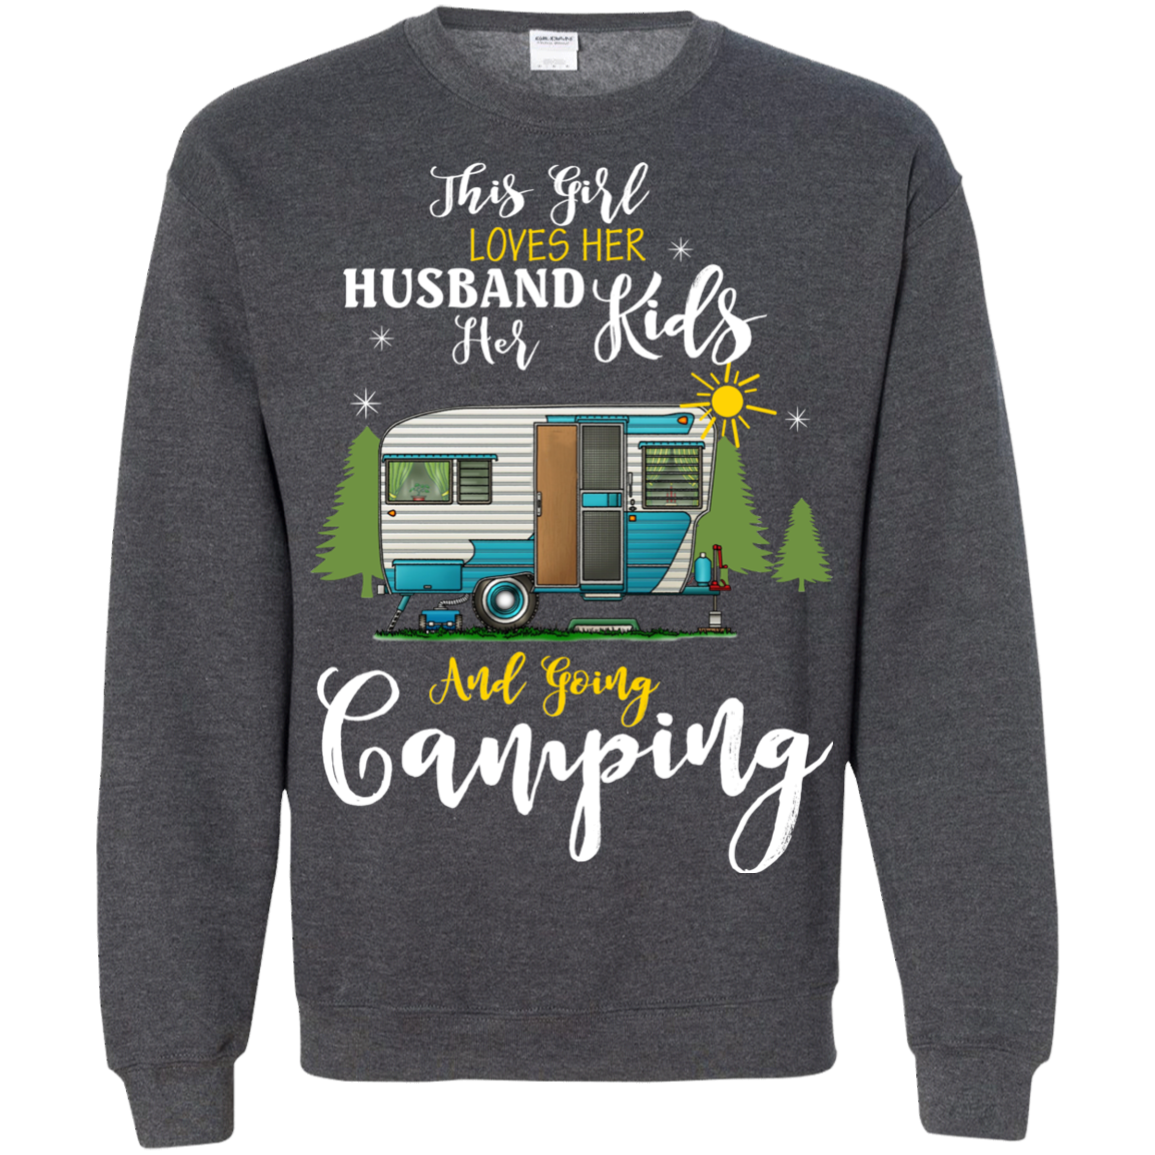 Camping T shirts Girl Love Her Husband Kids And Going Camping Hoodies Sweatshirts TH